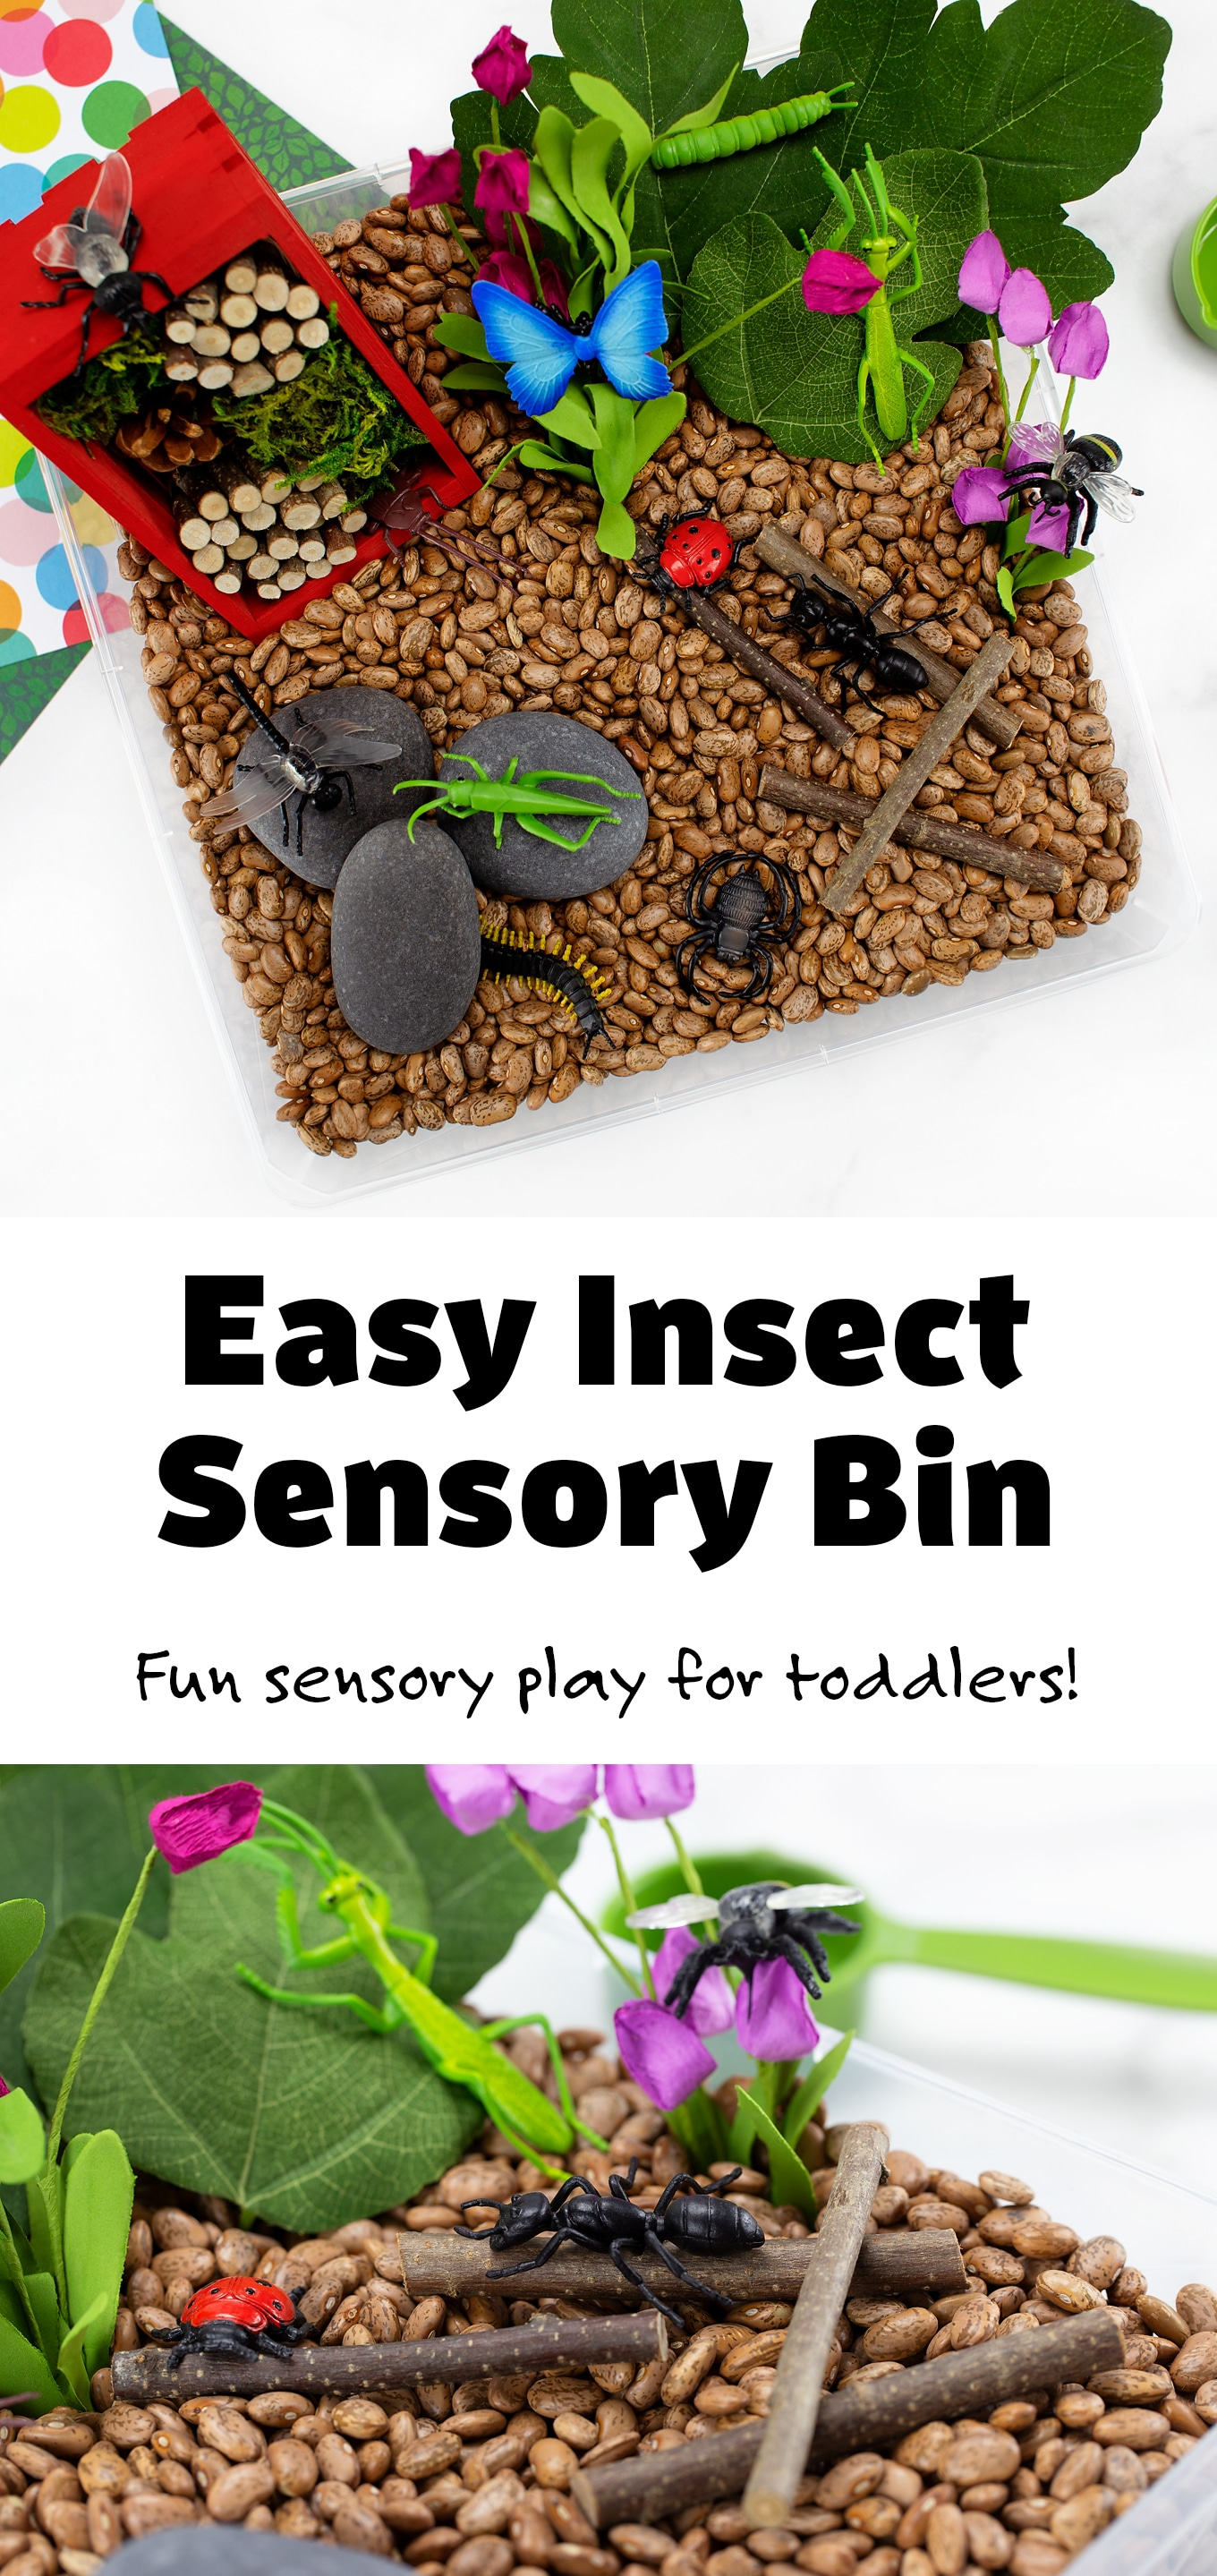 Preschoolers and toddlers will enjoy playfully learning all about insects and bugs with this easy and fun bug sensory bin! #preschool #toddlers #ideas #bugsensorybin #preschoolbugideas #sensorybin via @firefliesandmudpies